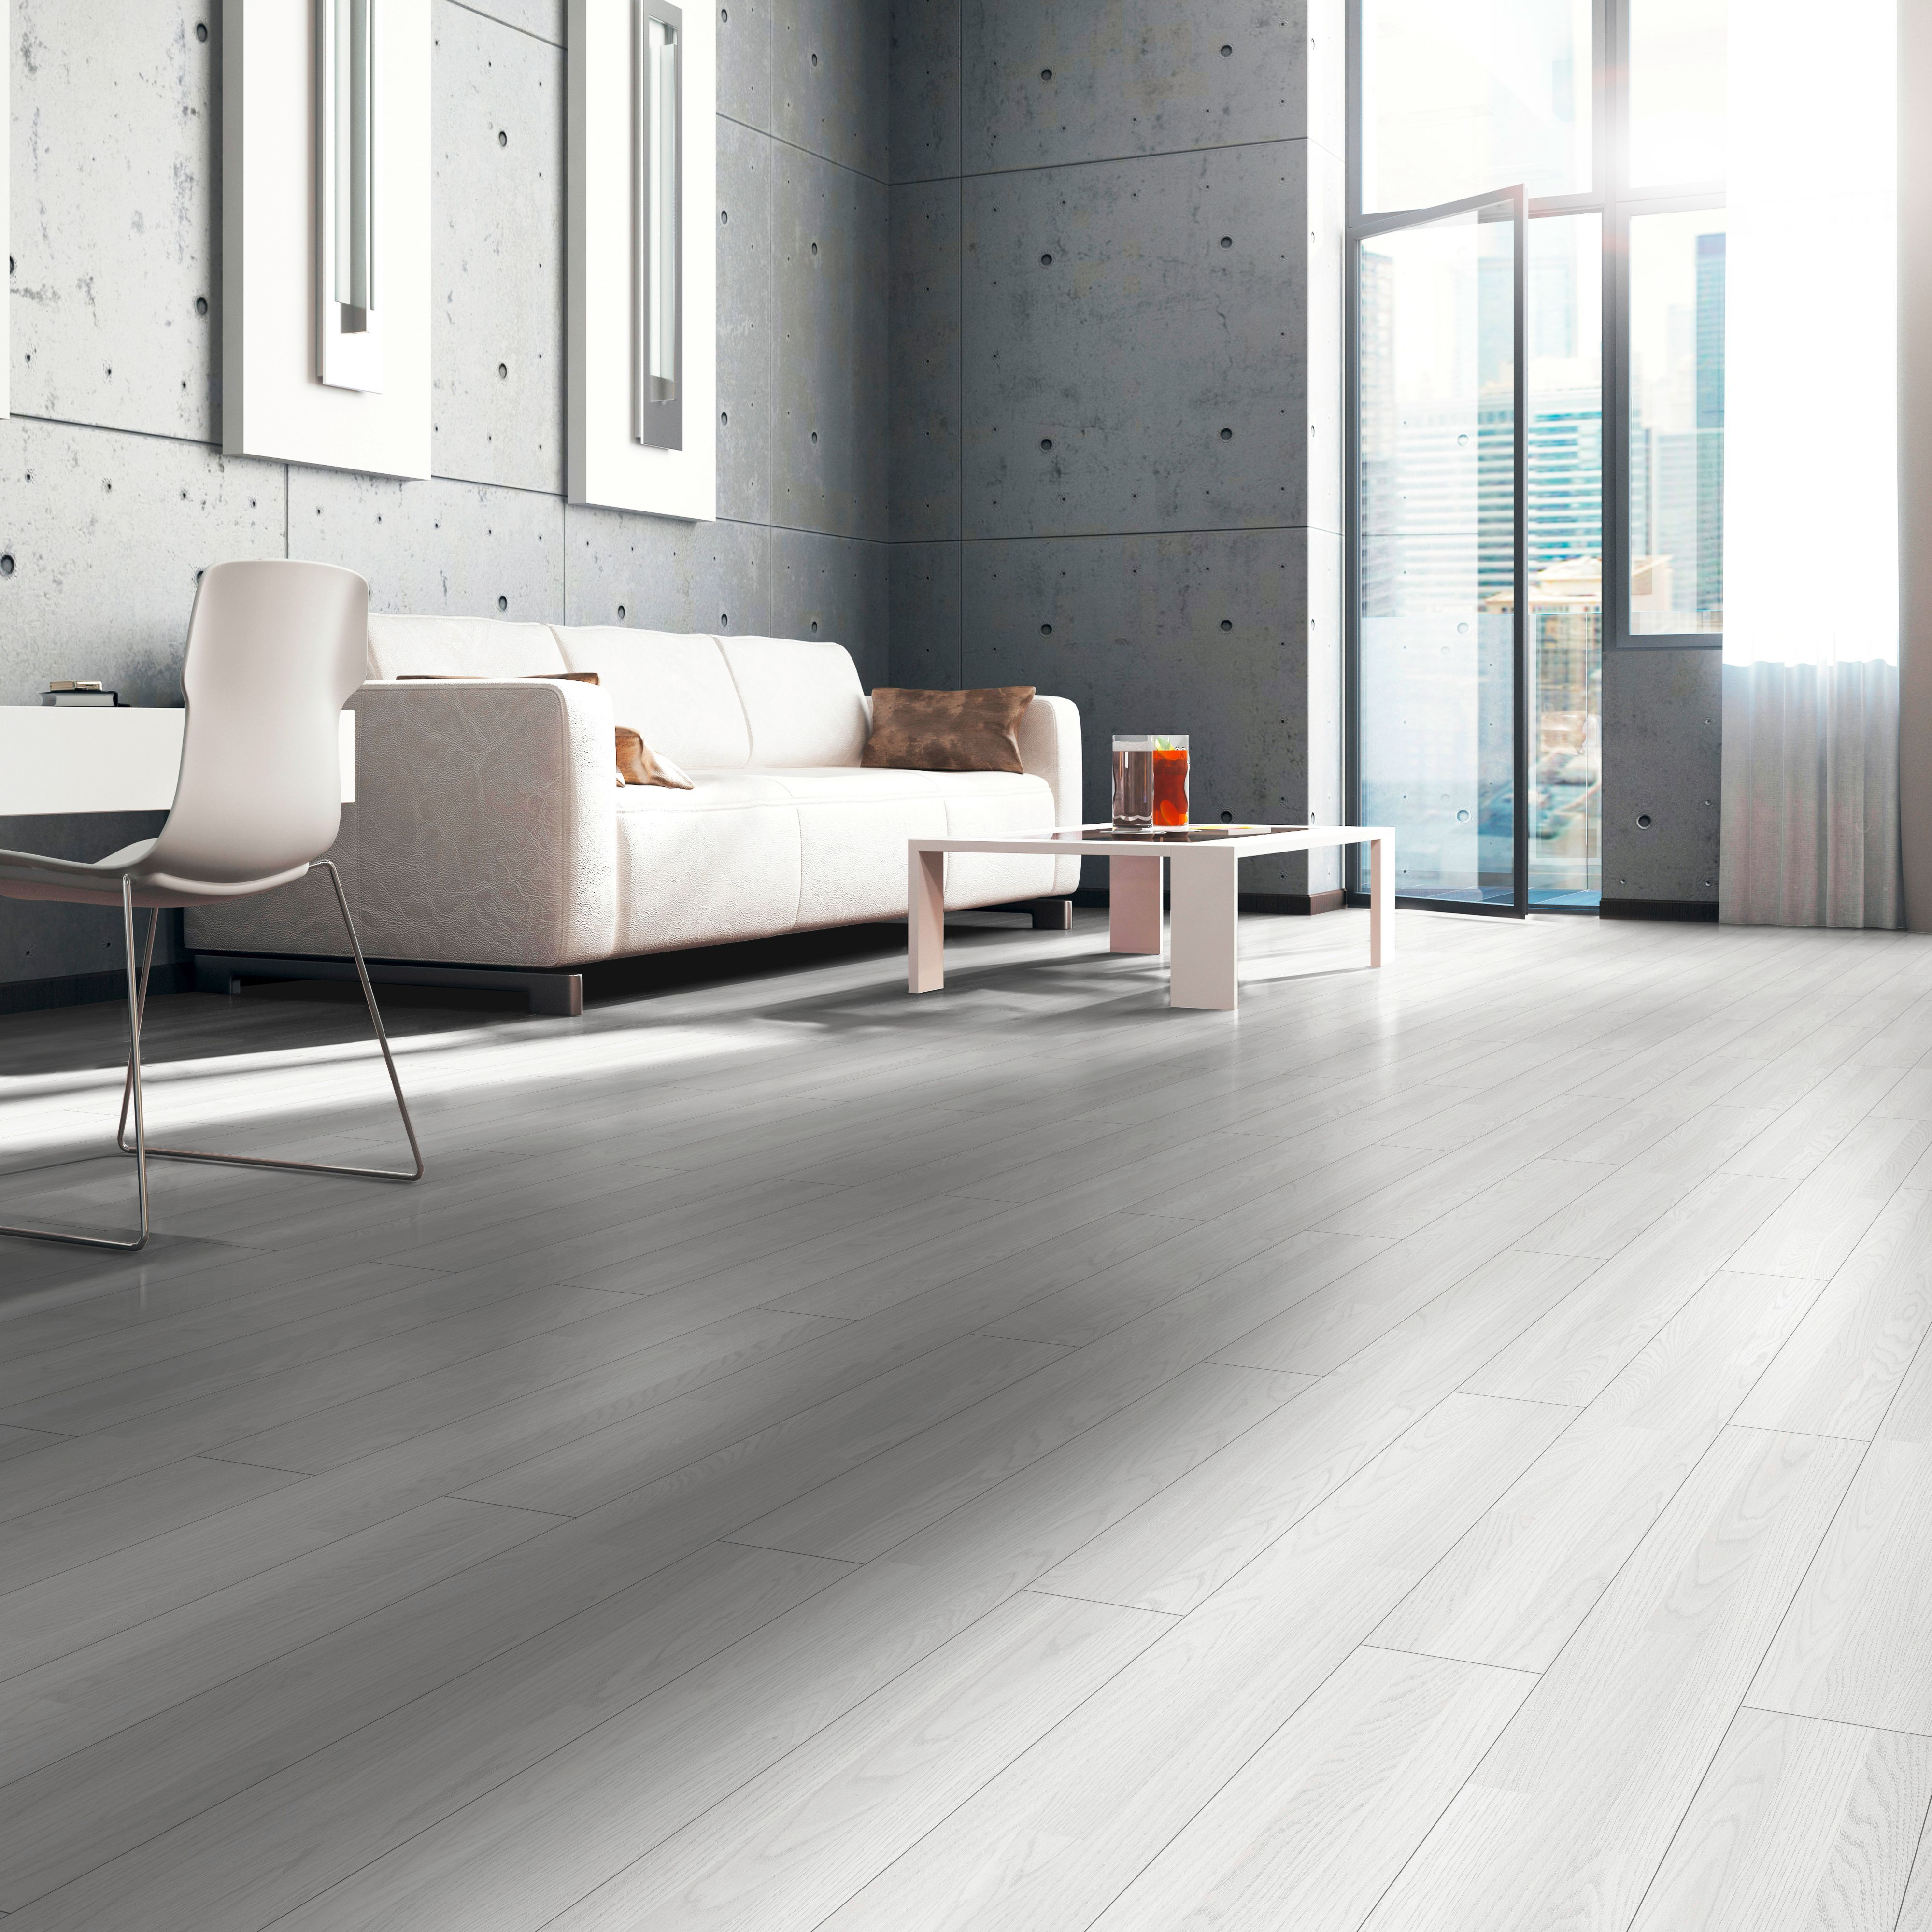 Wood Effect Laminate Flooring For Bathrooms